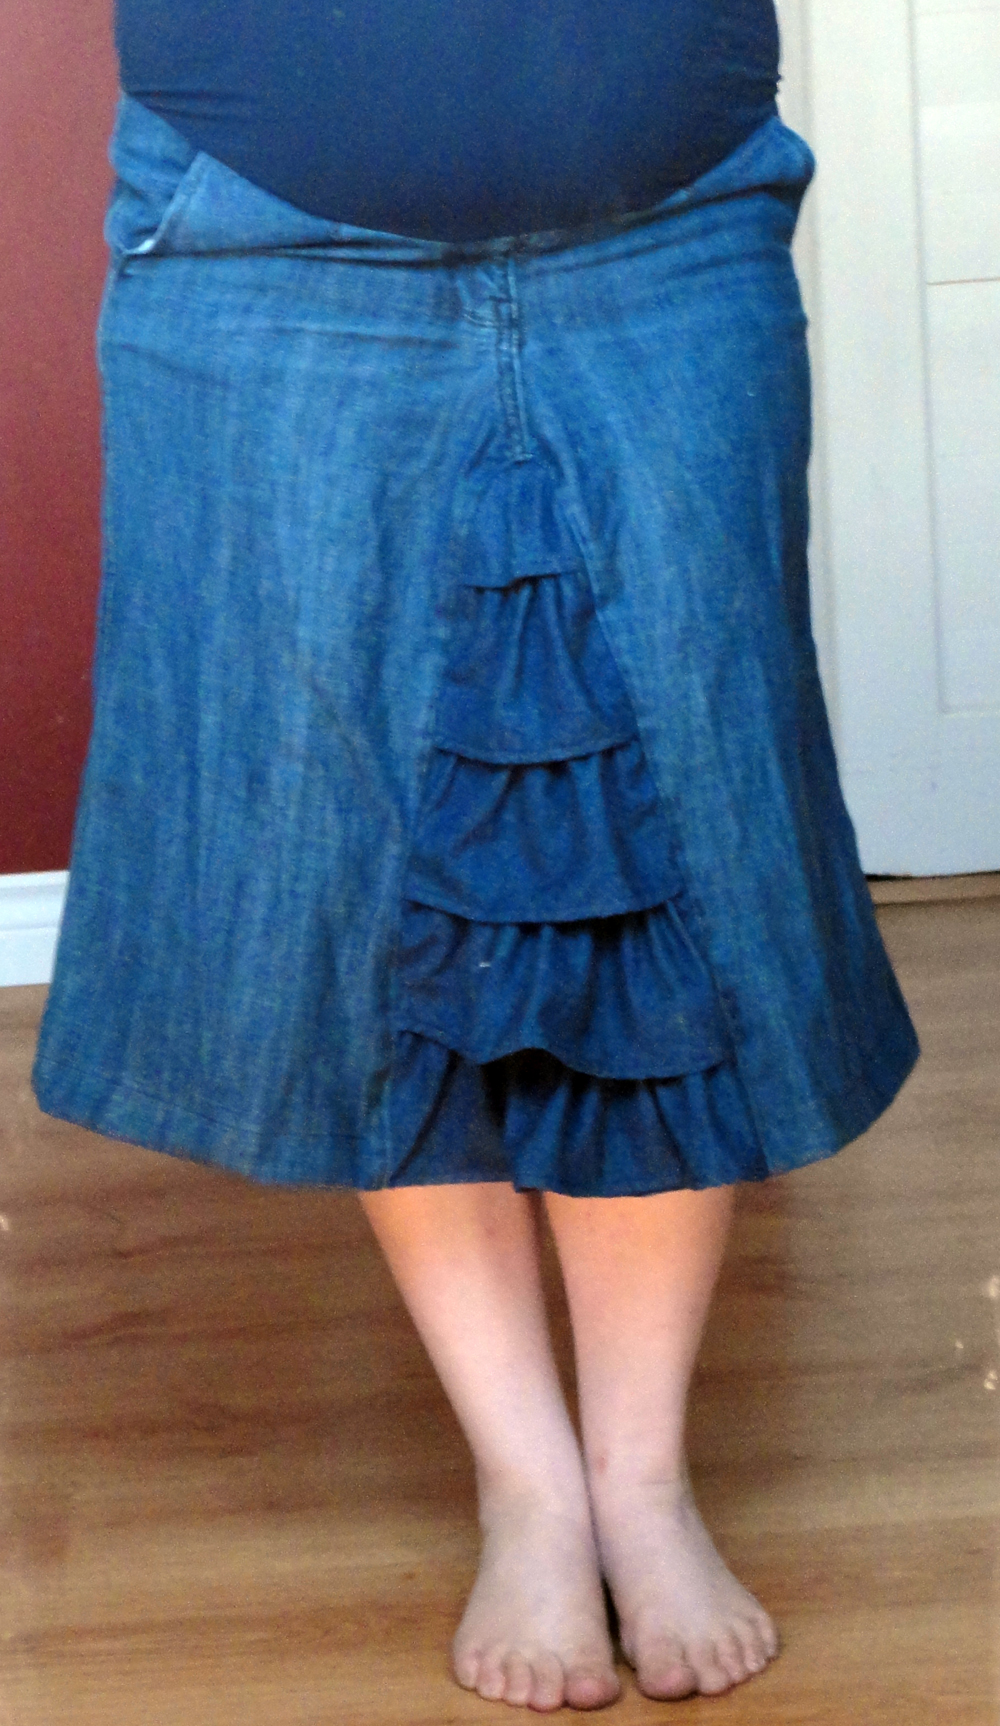 Sew A Ruffled Maternity Skirt from Jeans